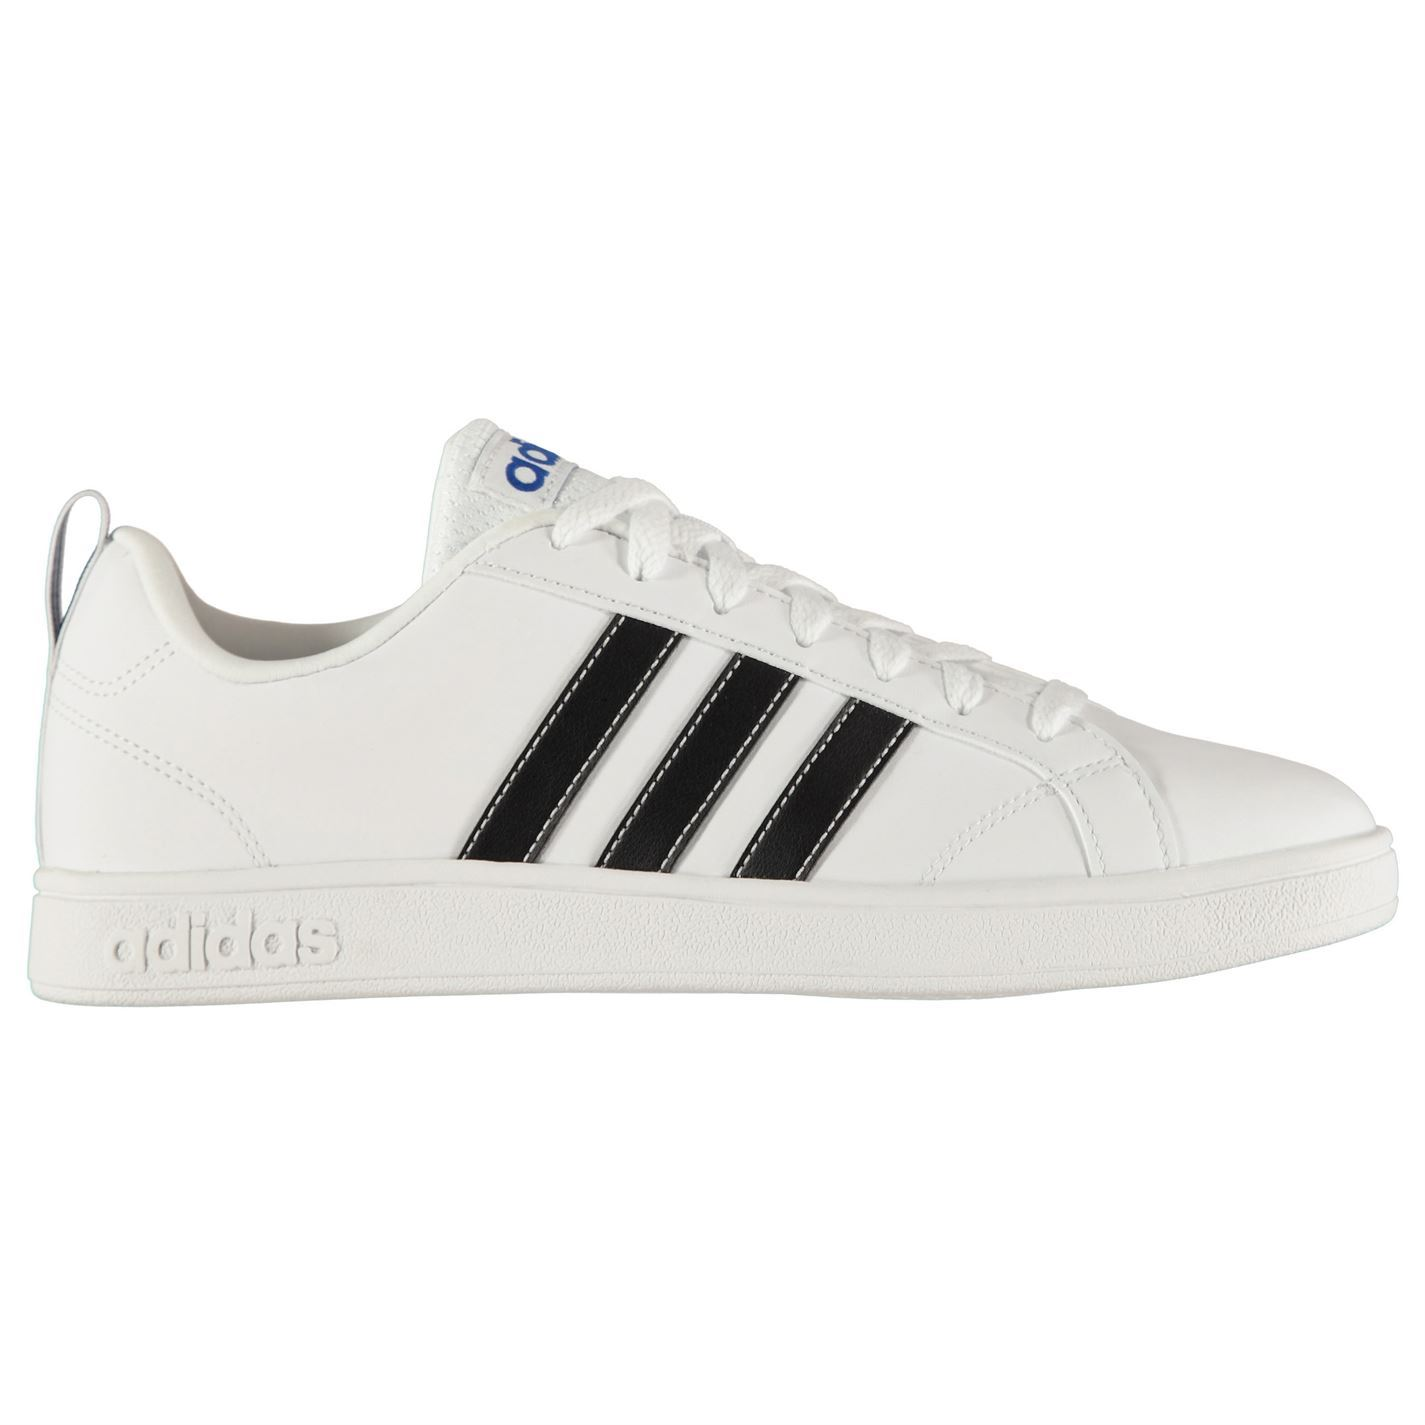 Adidas Cf Advantage Mens White Leather Low Top Lace Up Sneakers Shoes